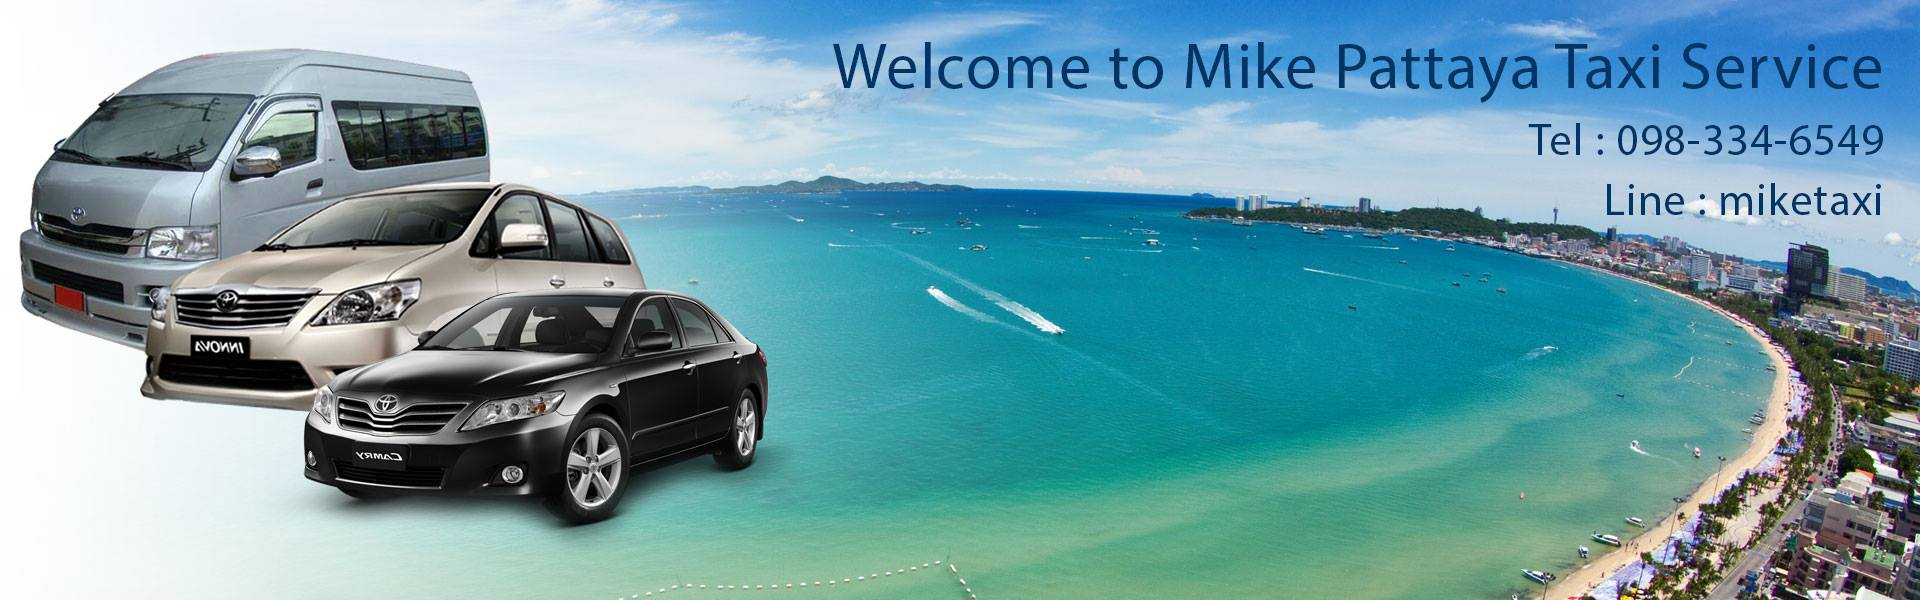 Mike Taxi Banner-3